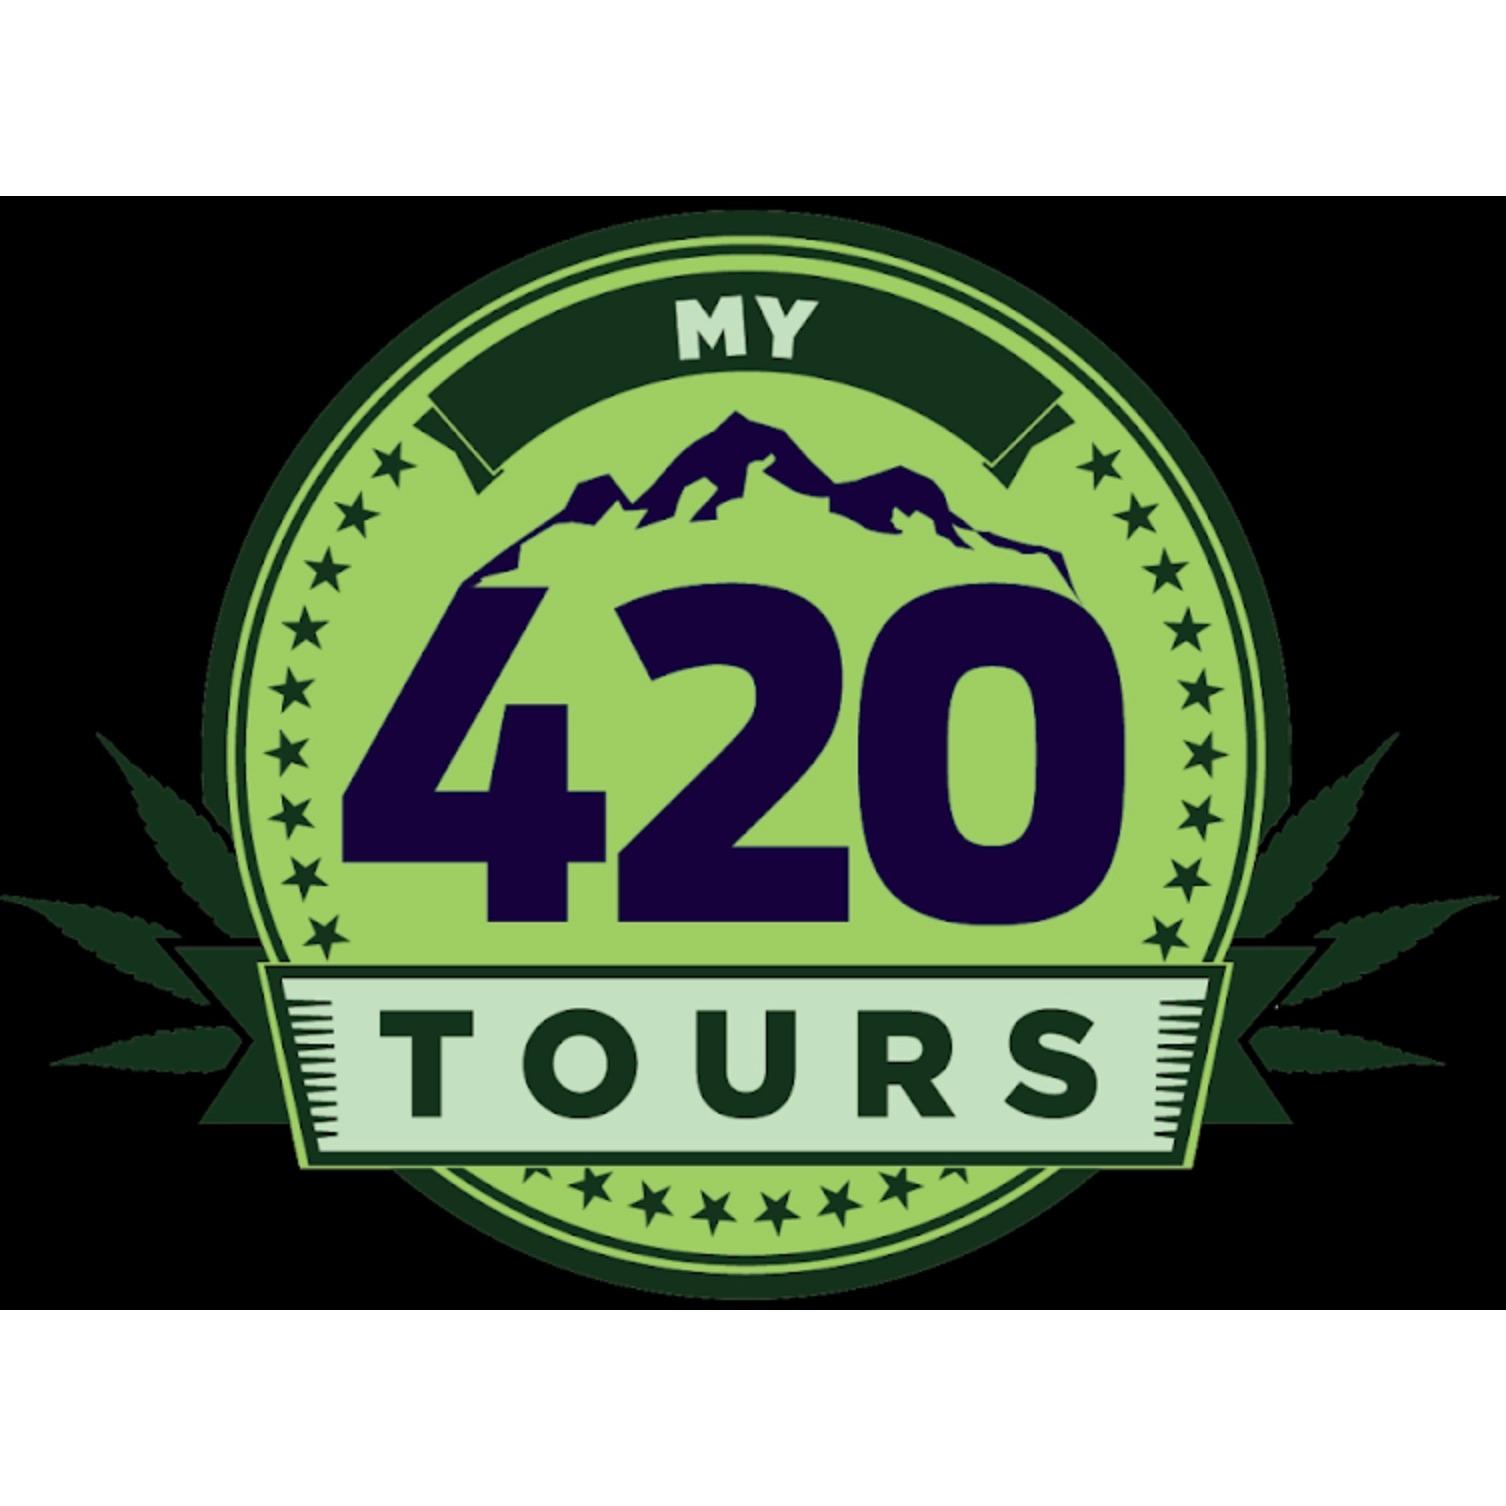 My 420 Tours | Denver Cannabis Tours